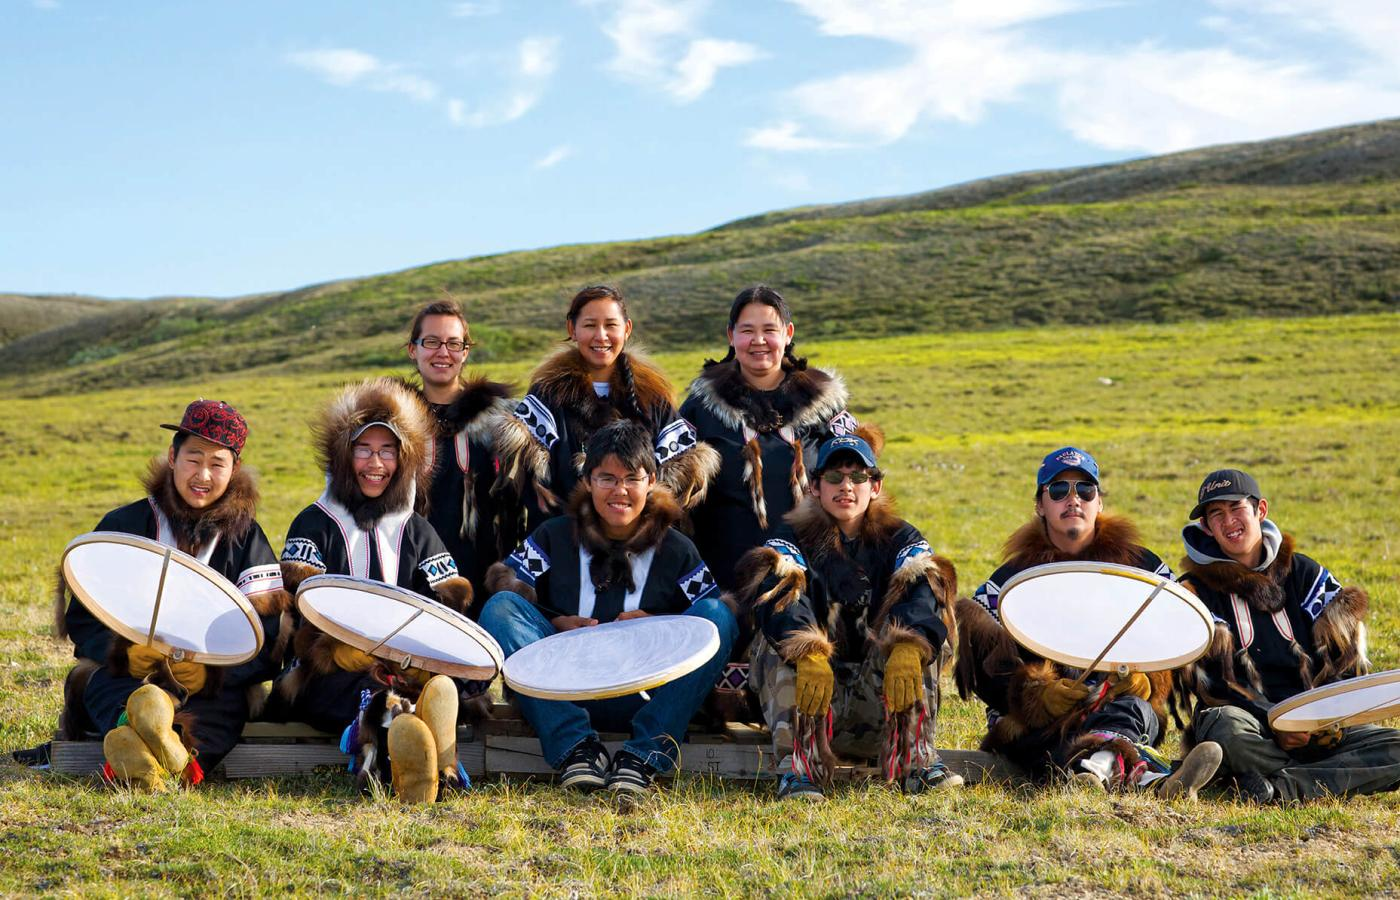 Inuvialuit drummers and dancers